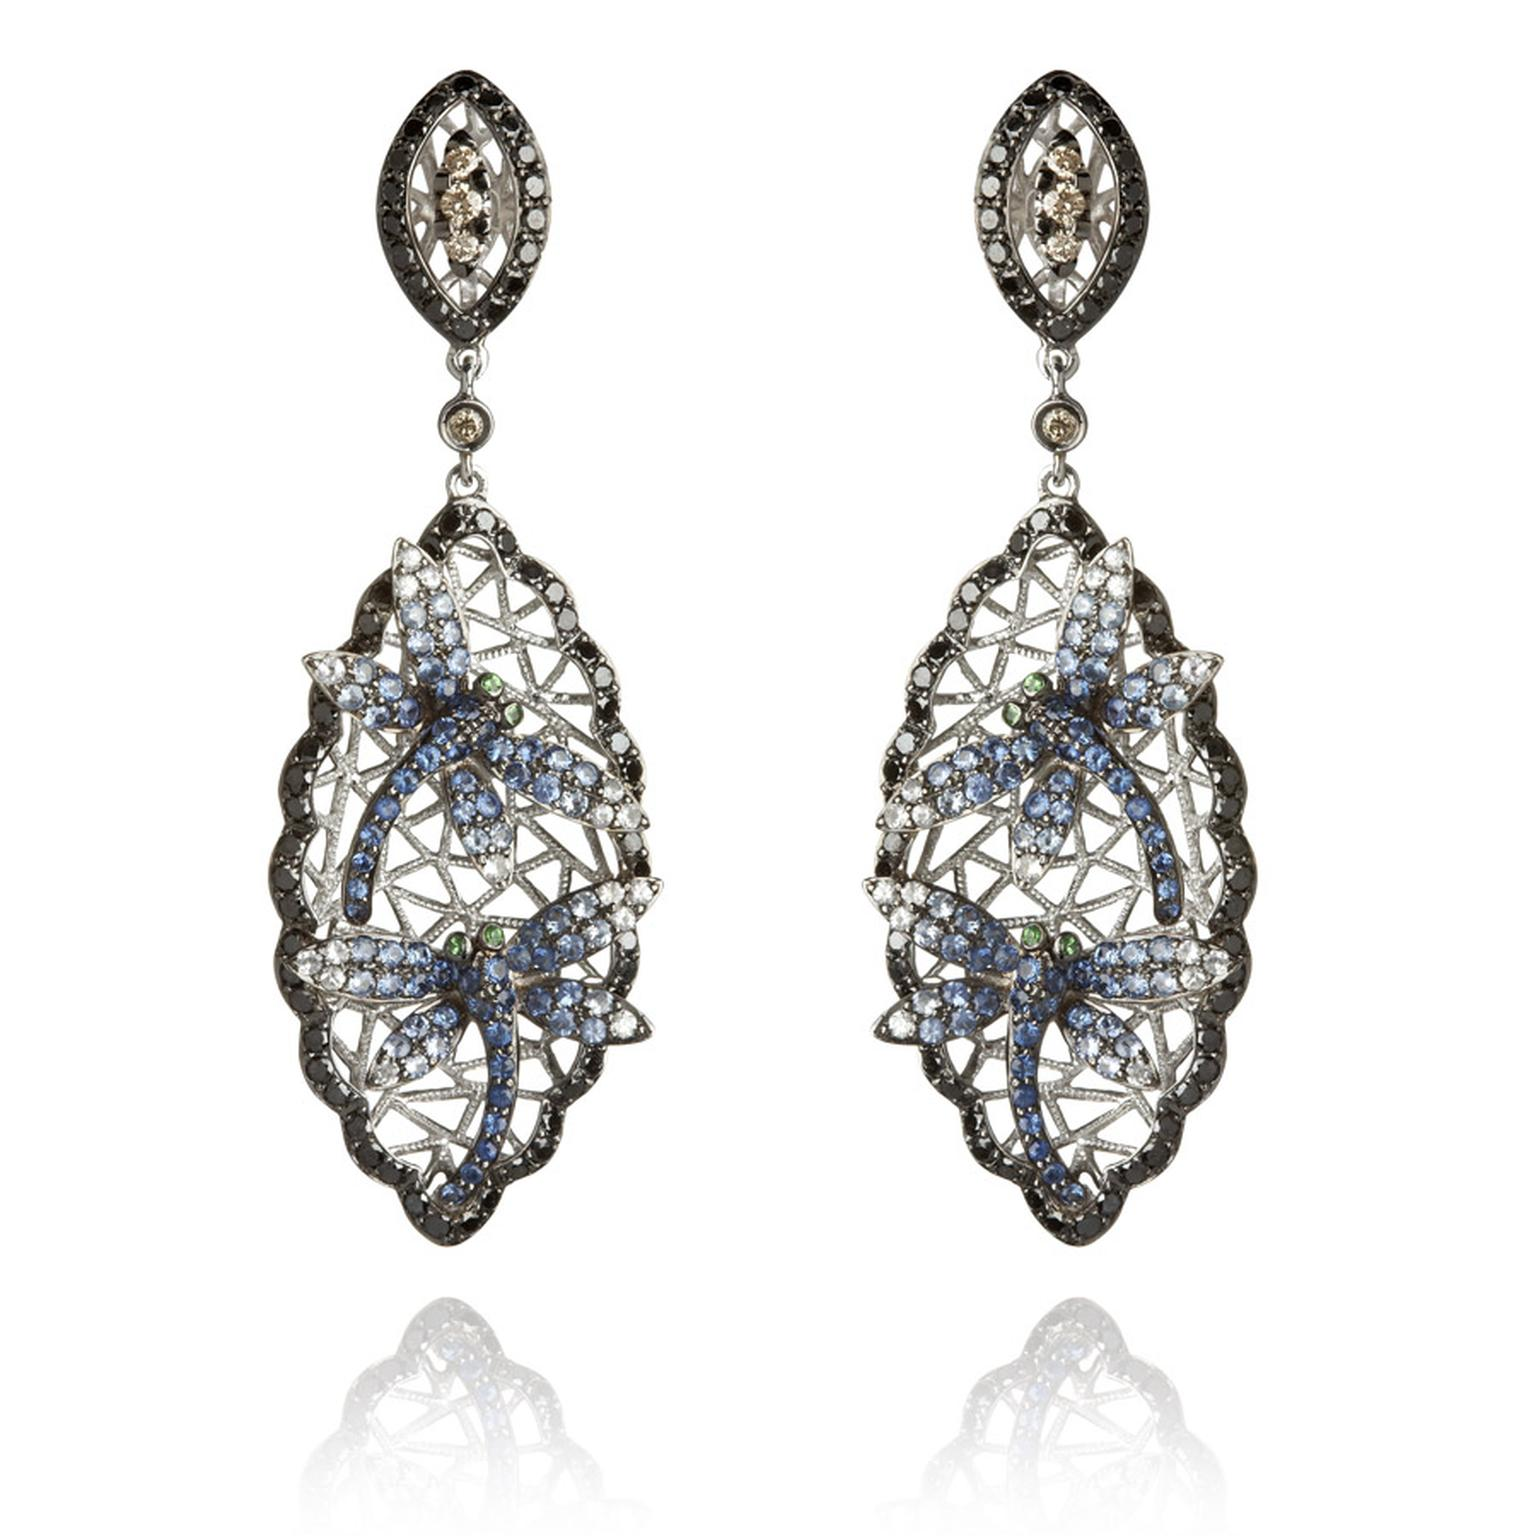 Wendy-Yue-Fantasie-18ct-white-gold,--diamond,-sapphire-and-garnet-Diving-Dragonfly-earrings-By-Wendy-Yue-for--Annoushka.jpg